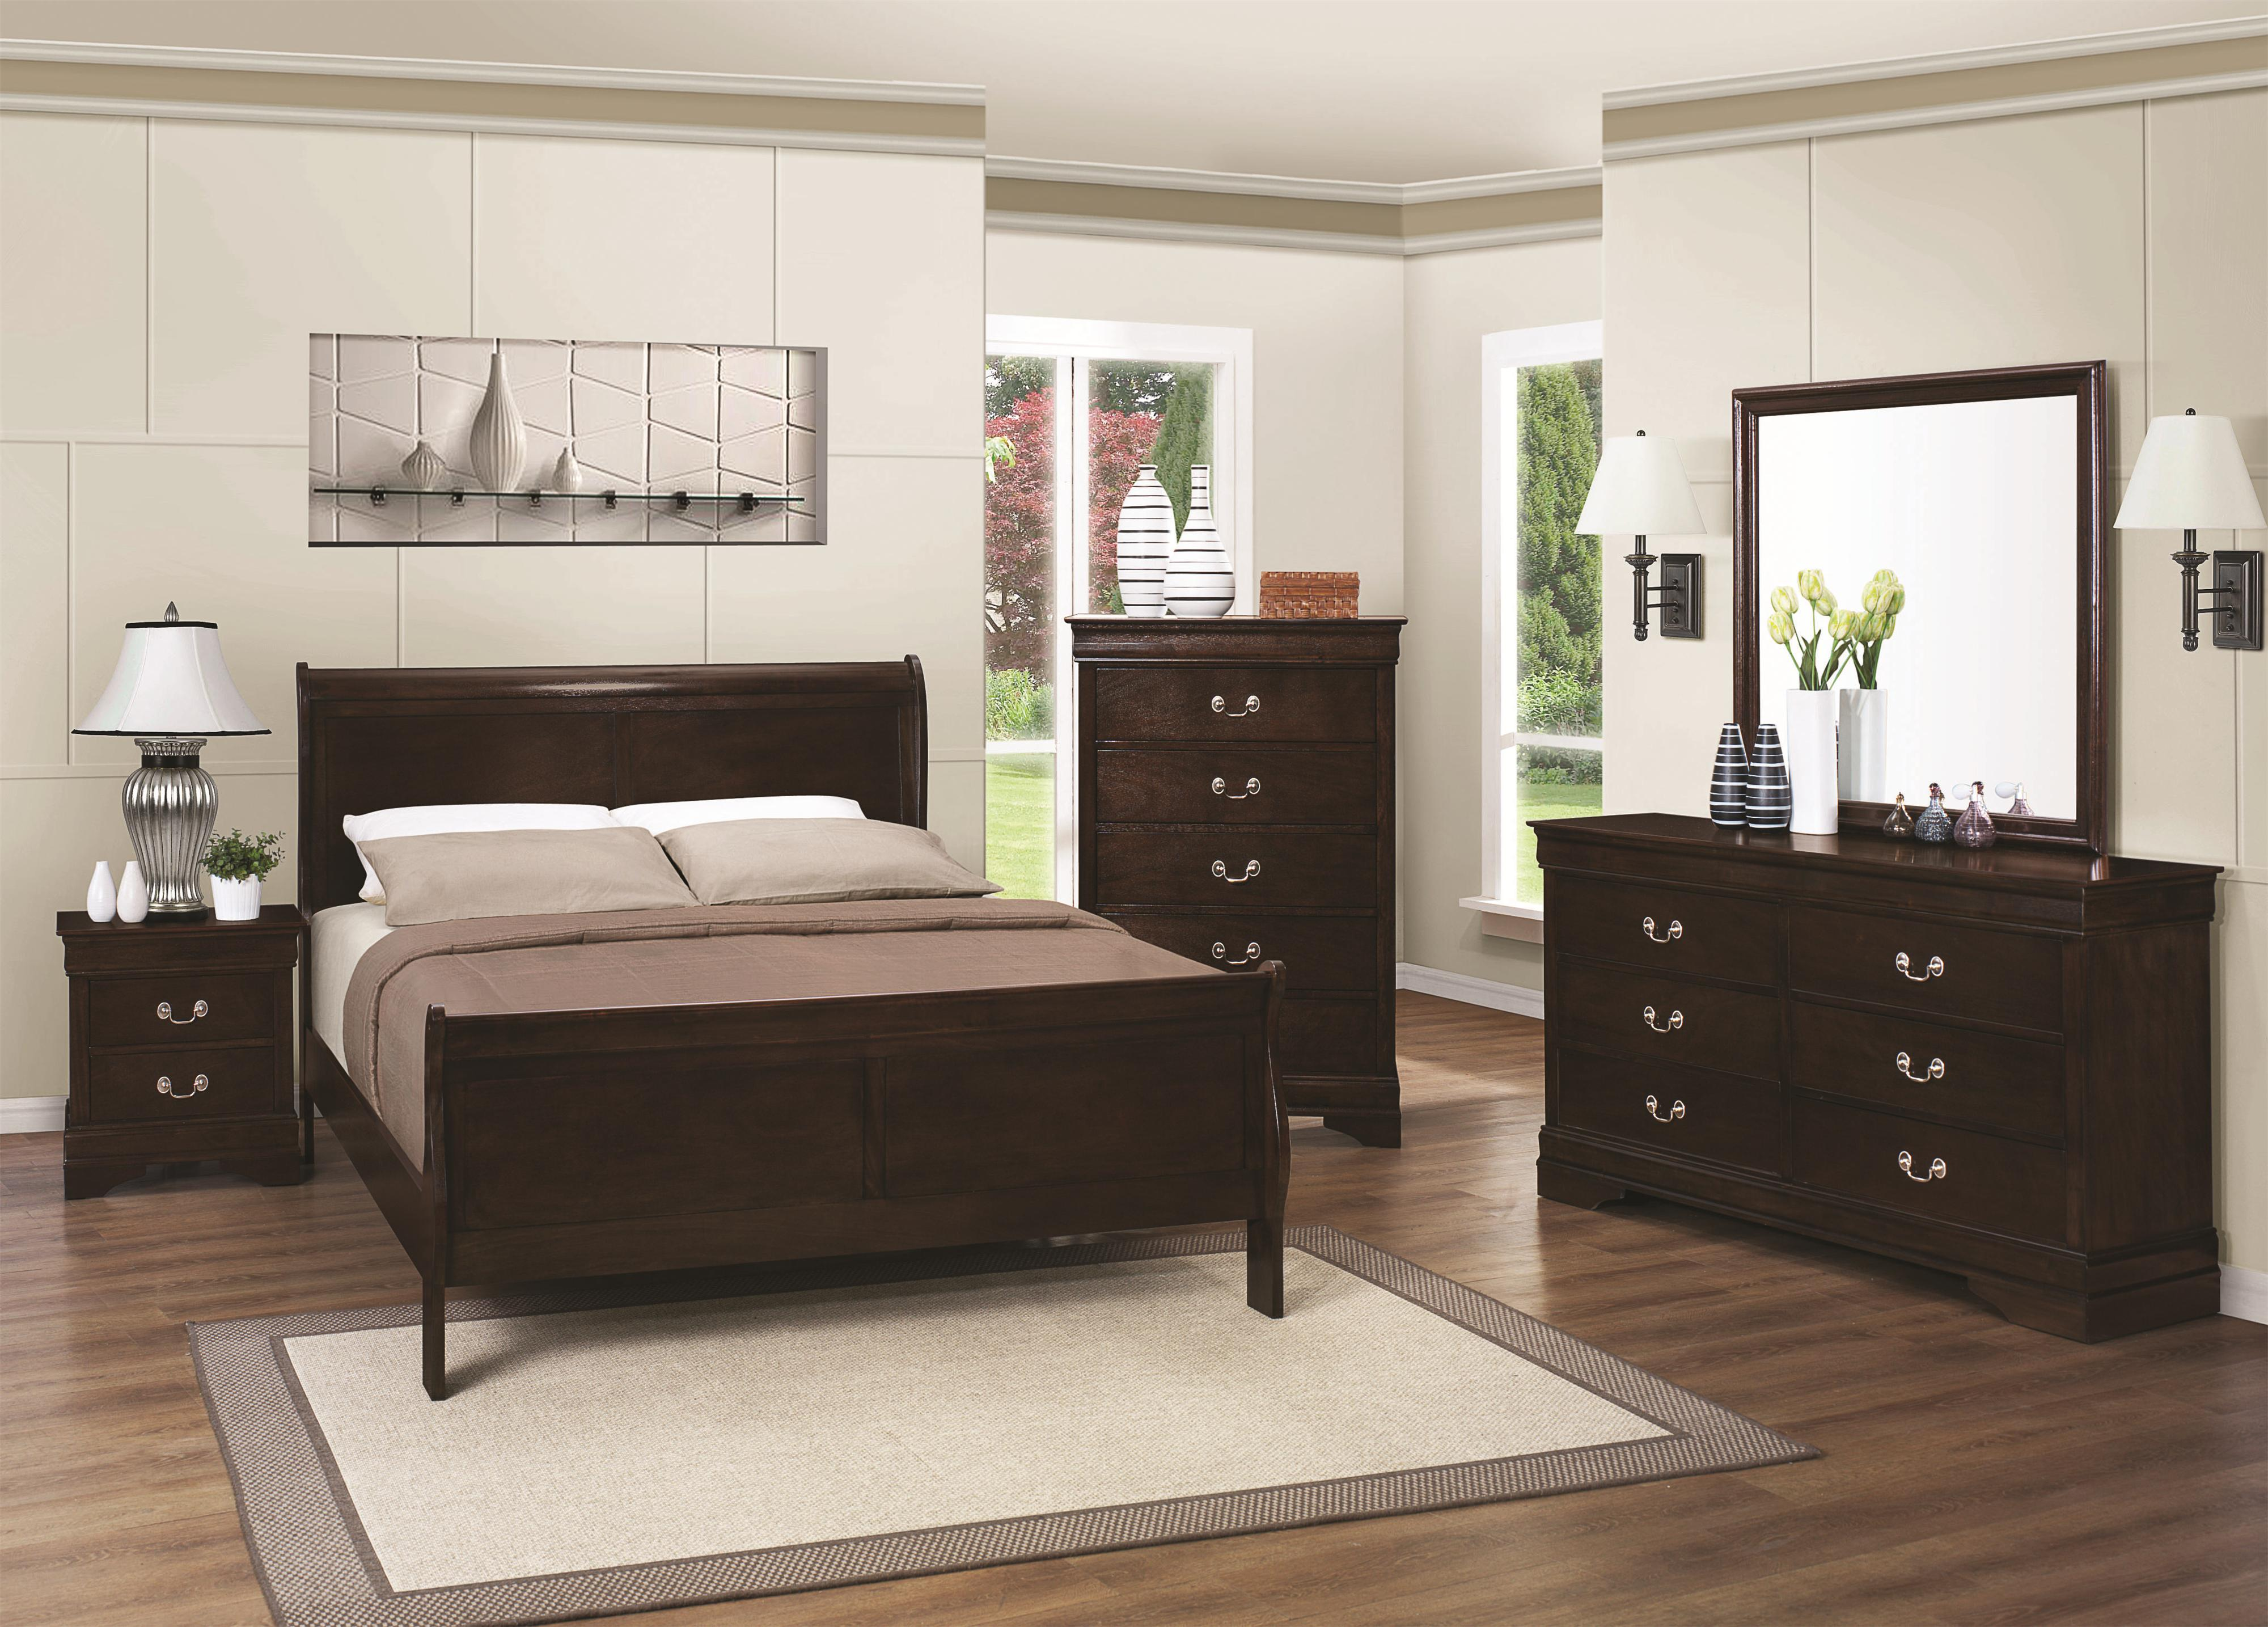 Coaster Louis Philippe 202 Full Bedroom Group - Item Number: 202 F Bedroom Group 1